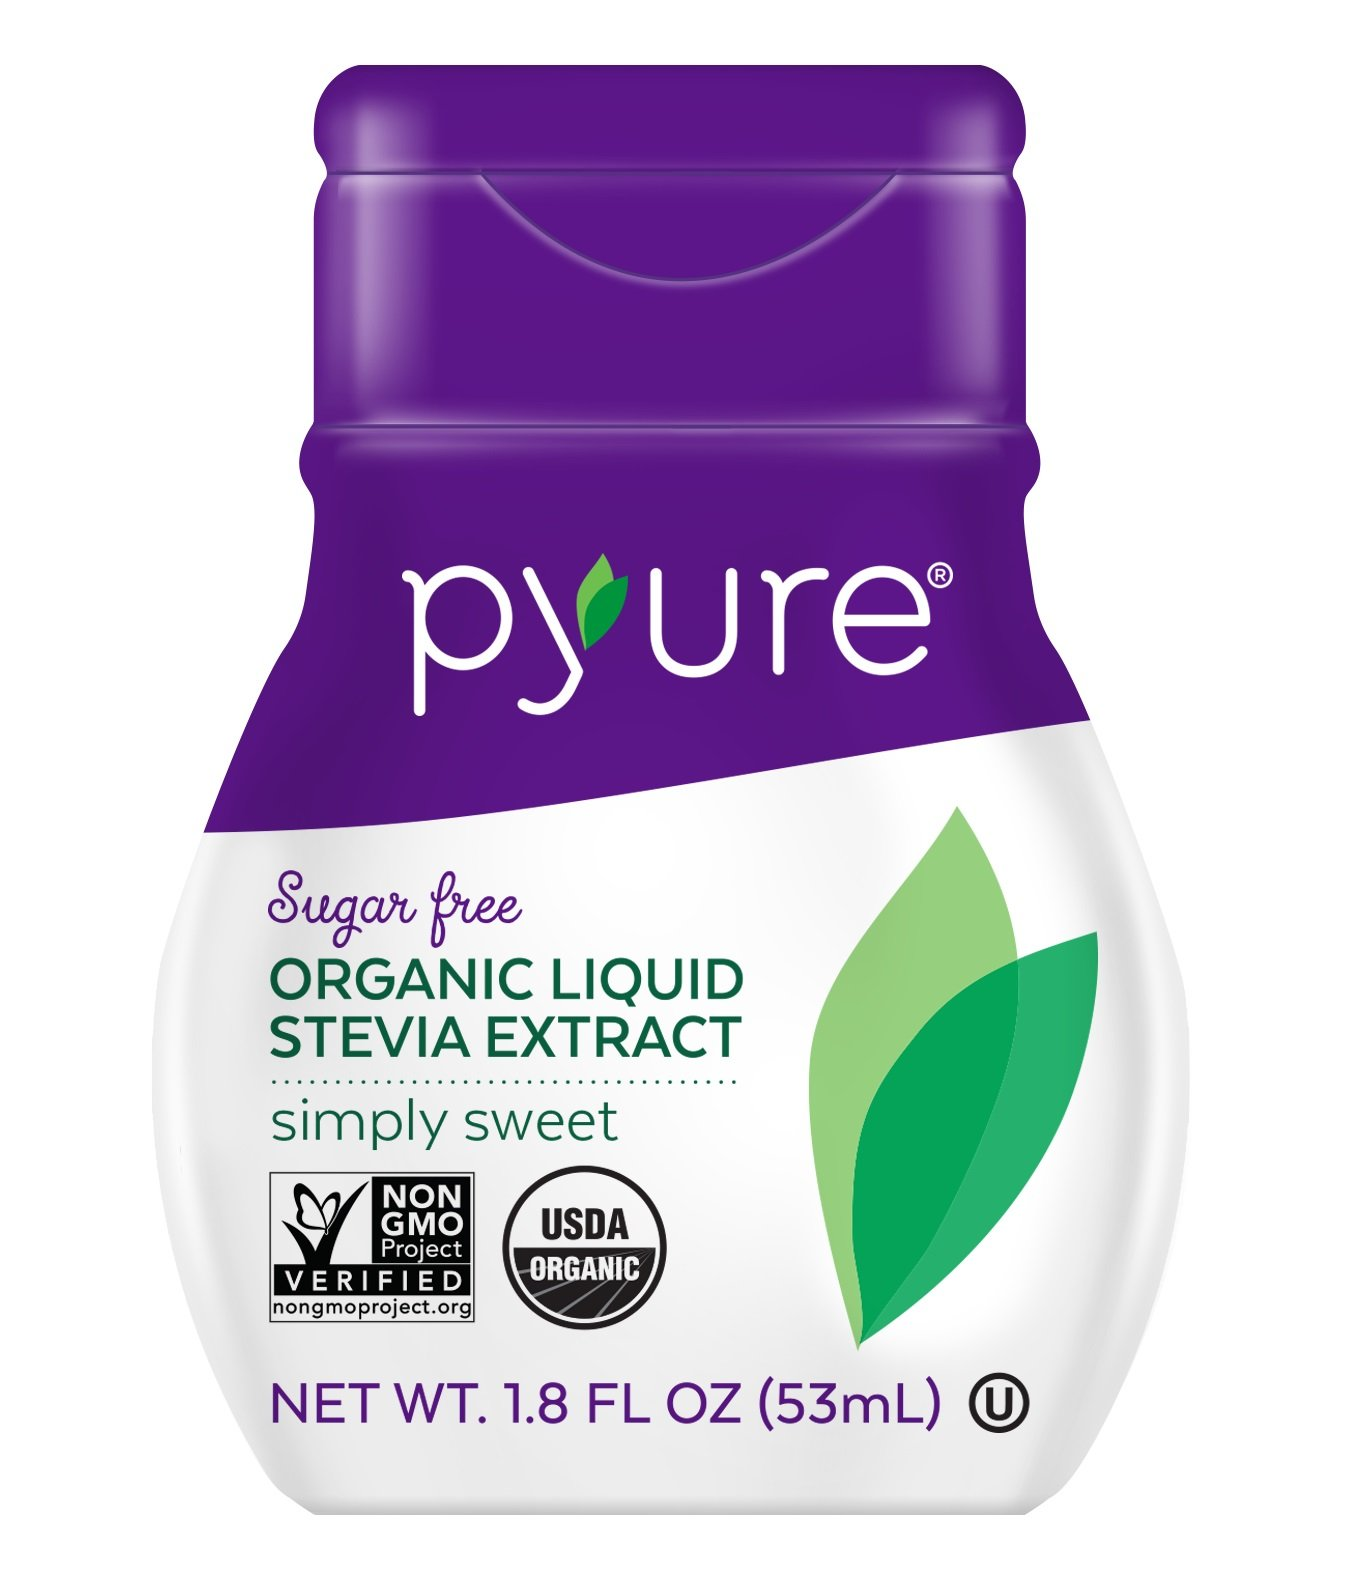 Pyure Organic Liquid Stevia Extract Sweetener, Simply Sweet, Sugar Substitute, 200 Servingsper Container, 1.8 Fl. Oz. (Pack of 6) by Pyure